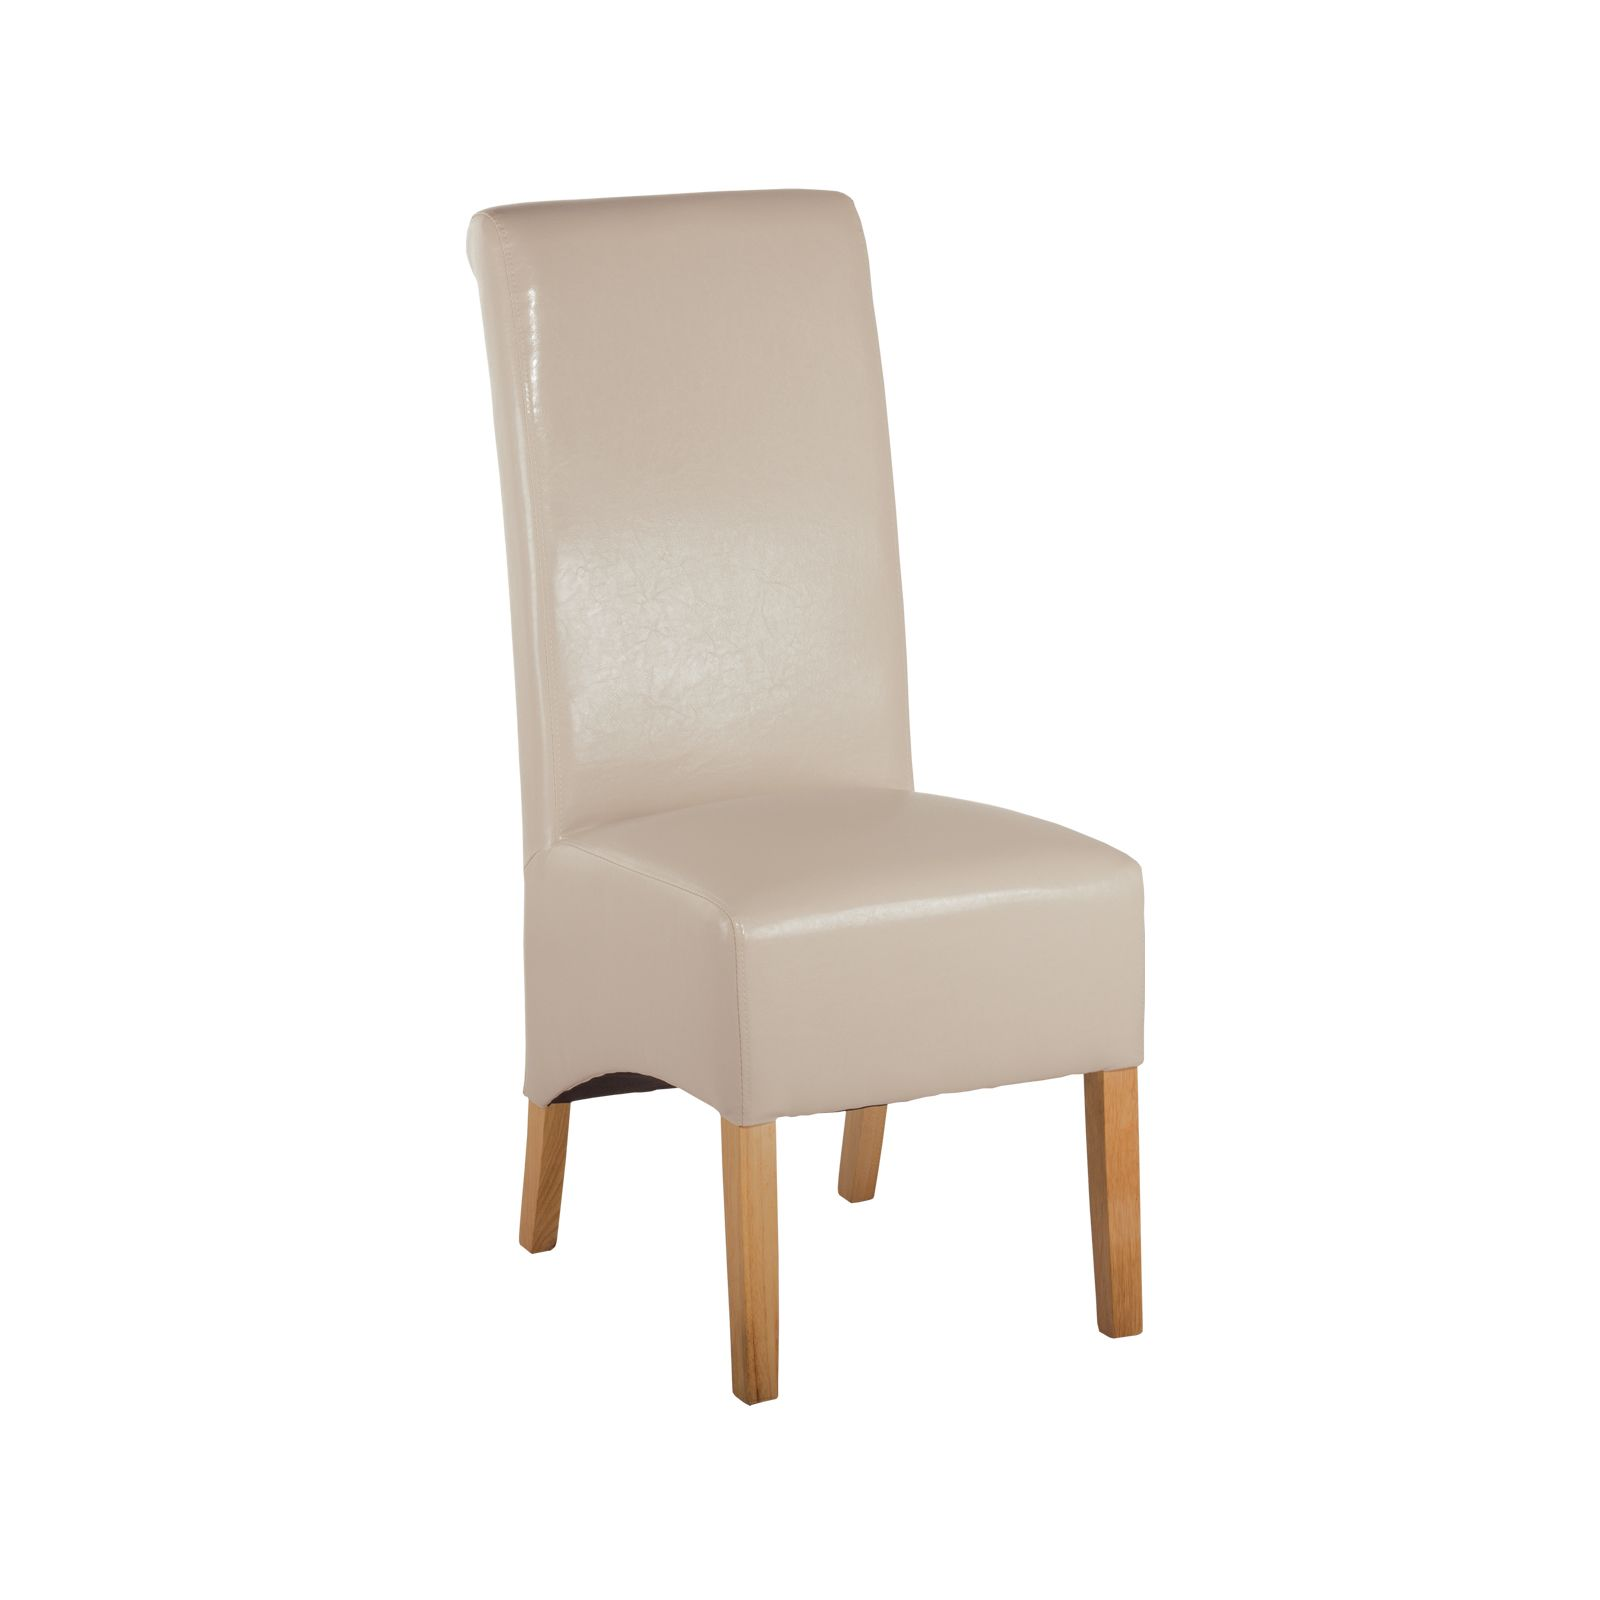 High back leather dining chairs Shop for cheap Furniture  : I50602106273795020150424 from latest.priceinspector.co.uk size 1600 x 1600 jpeg 42kB